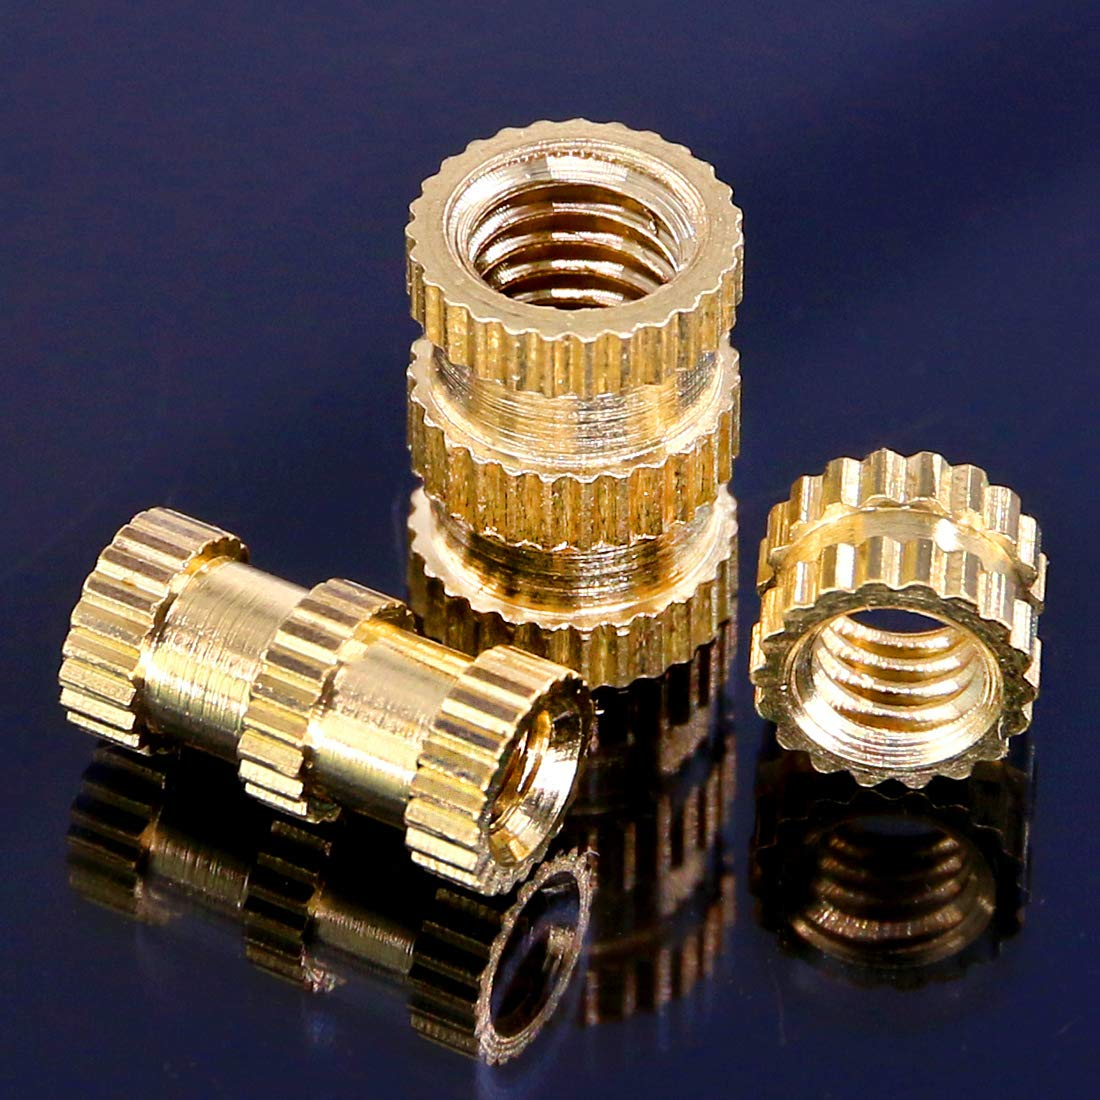 Brass Slip Nut Flat Knurled Nut Brass Brass Nuts Nuts 140 Pieces Project Compatible Installation 3D Printing